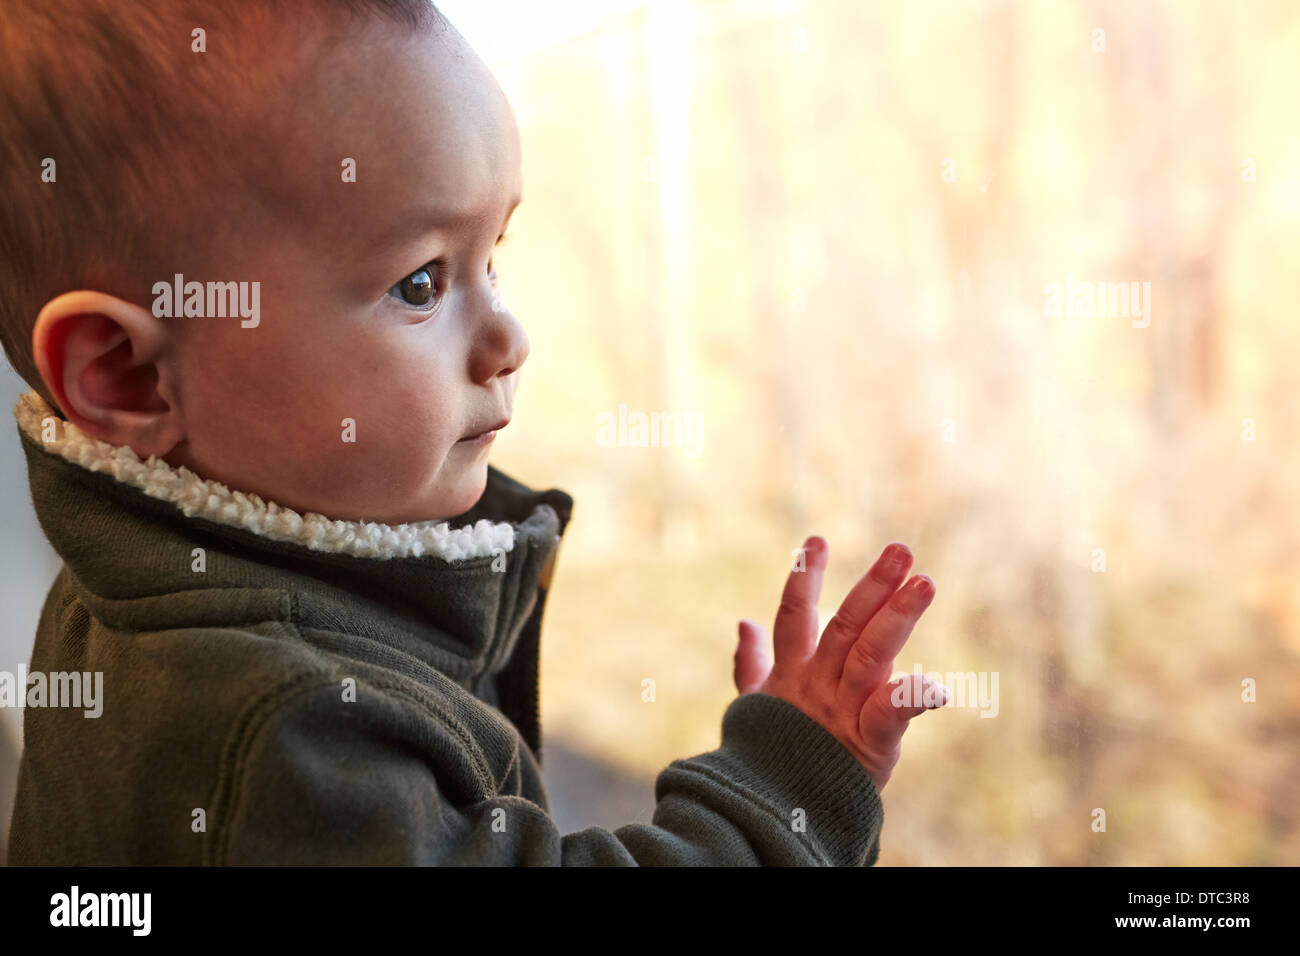 Close up of baby boy looking out of window - Stock Image